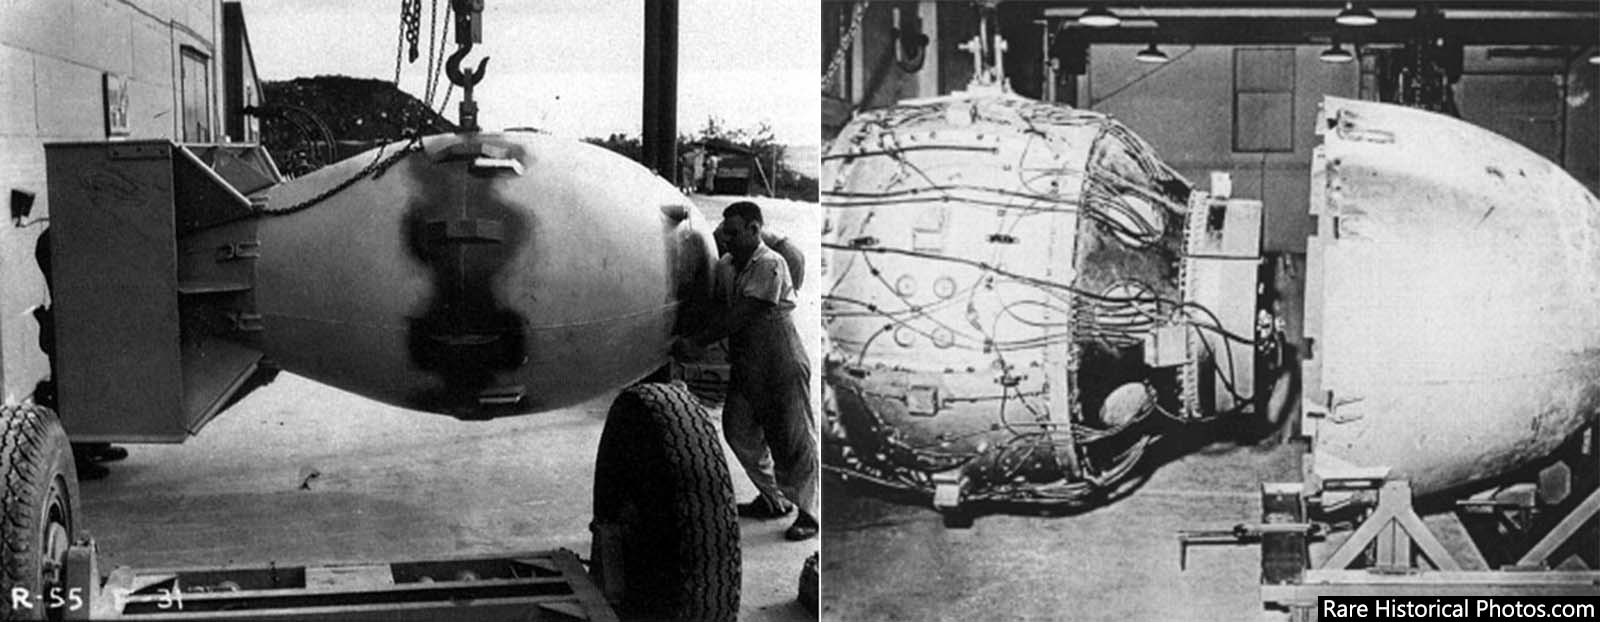 The Fat Man atomic bomb being readied on Tinian (right); Fat Man's nuclear device about to be encased (left).